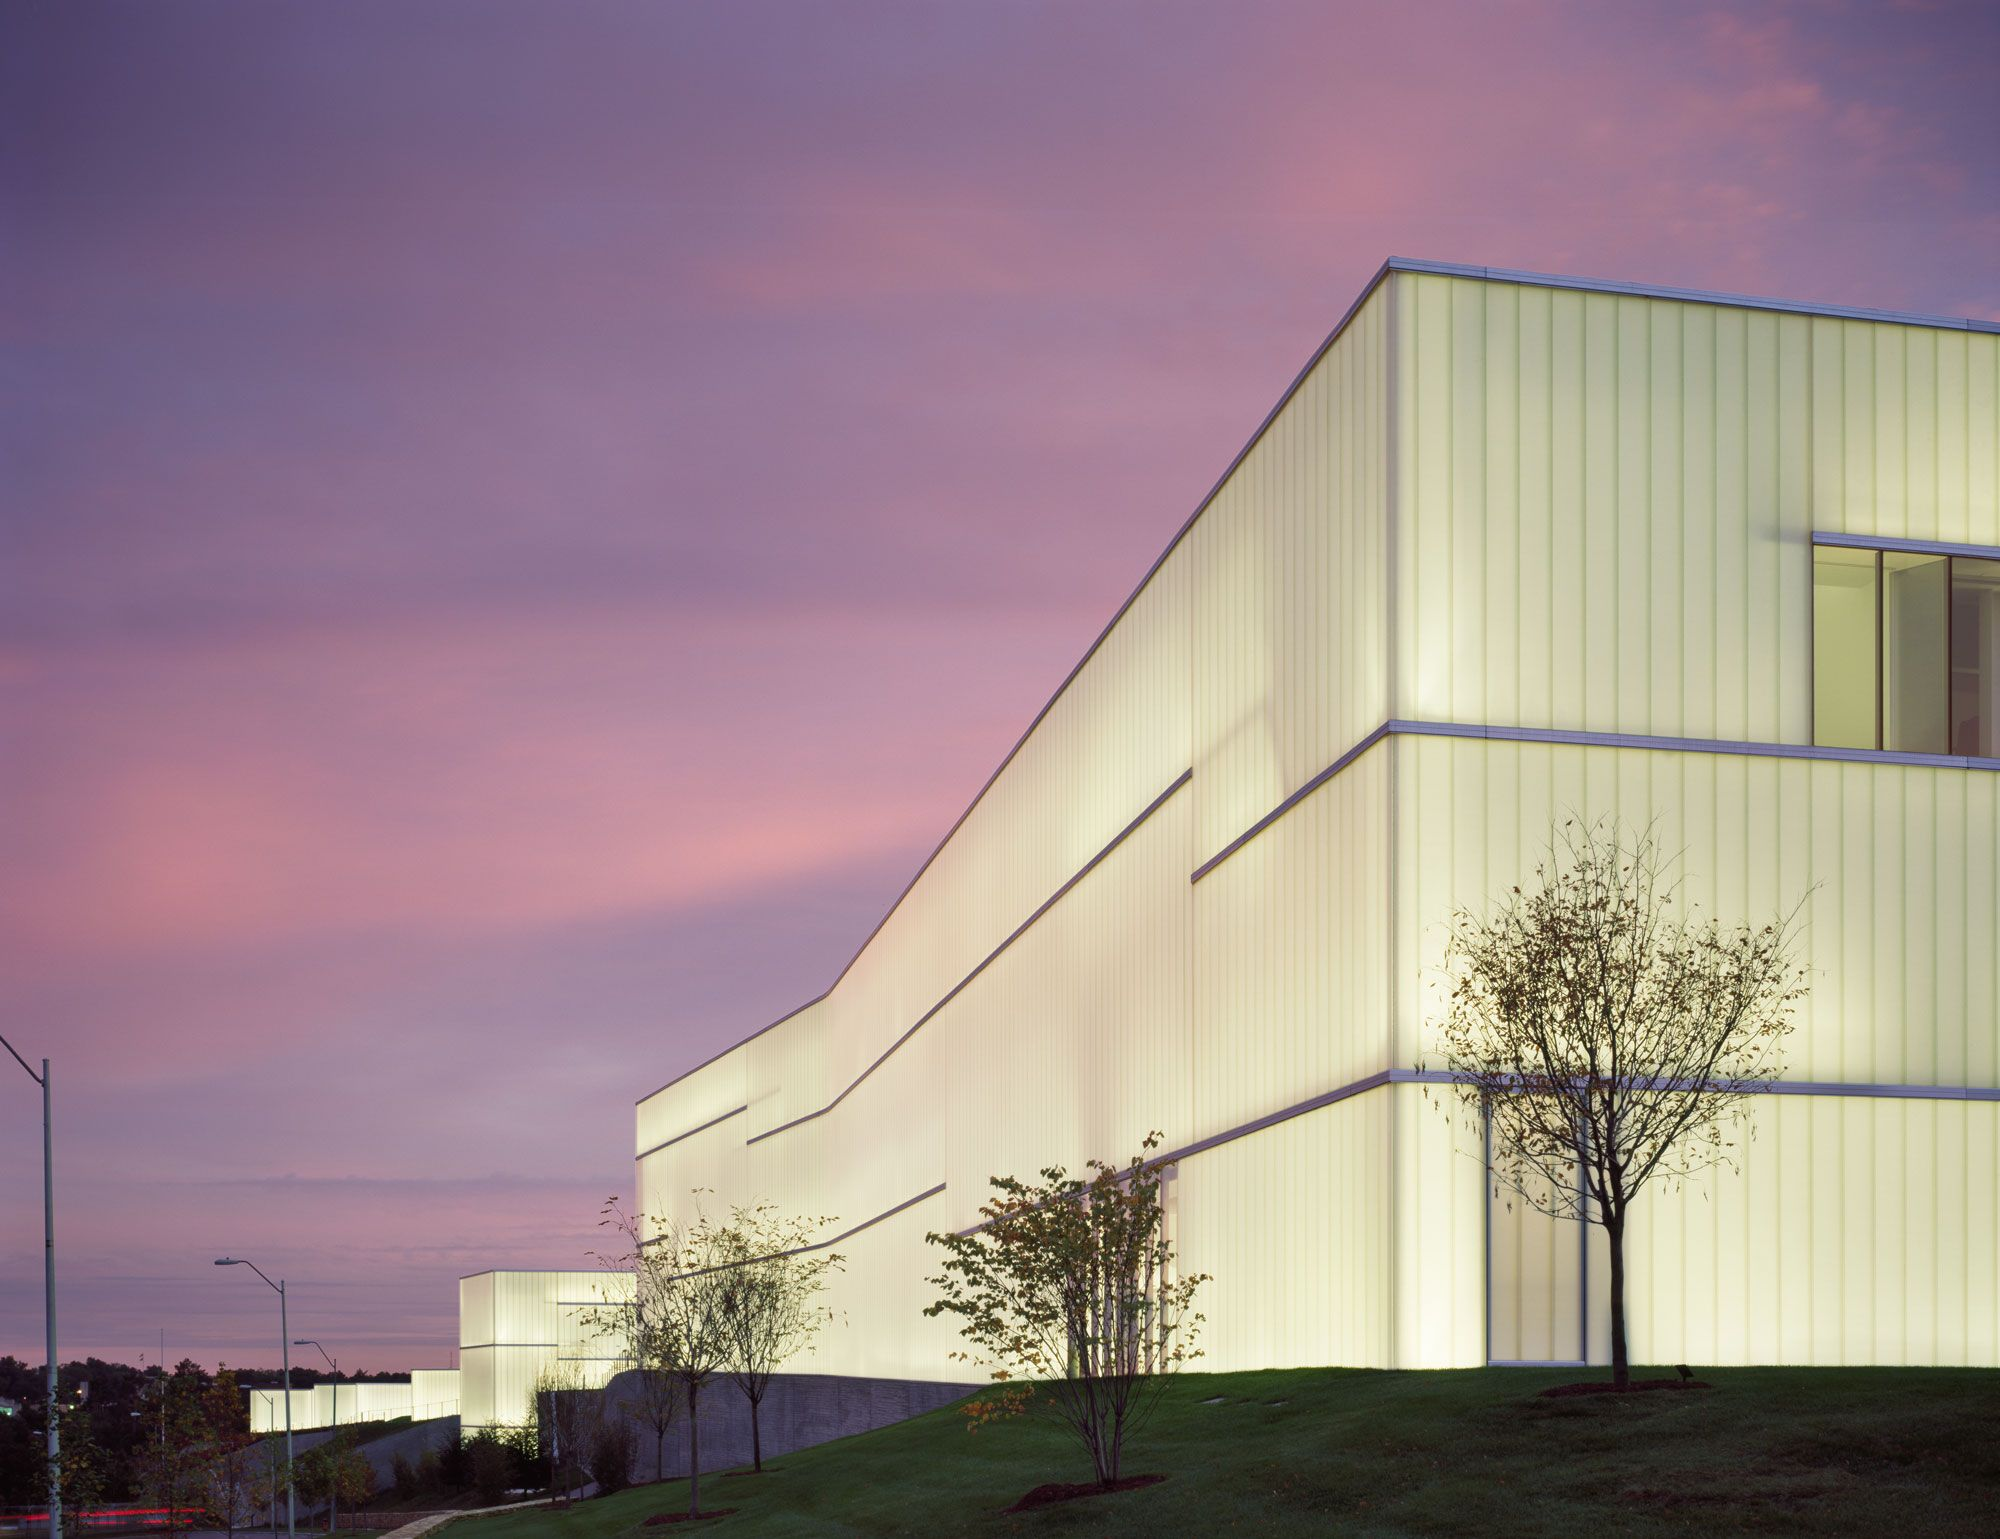 Nelson atkins museum of art bendheim channel glass for Architectural glass art